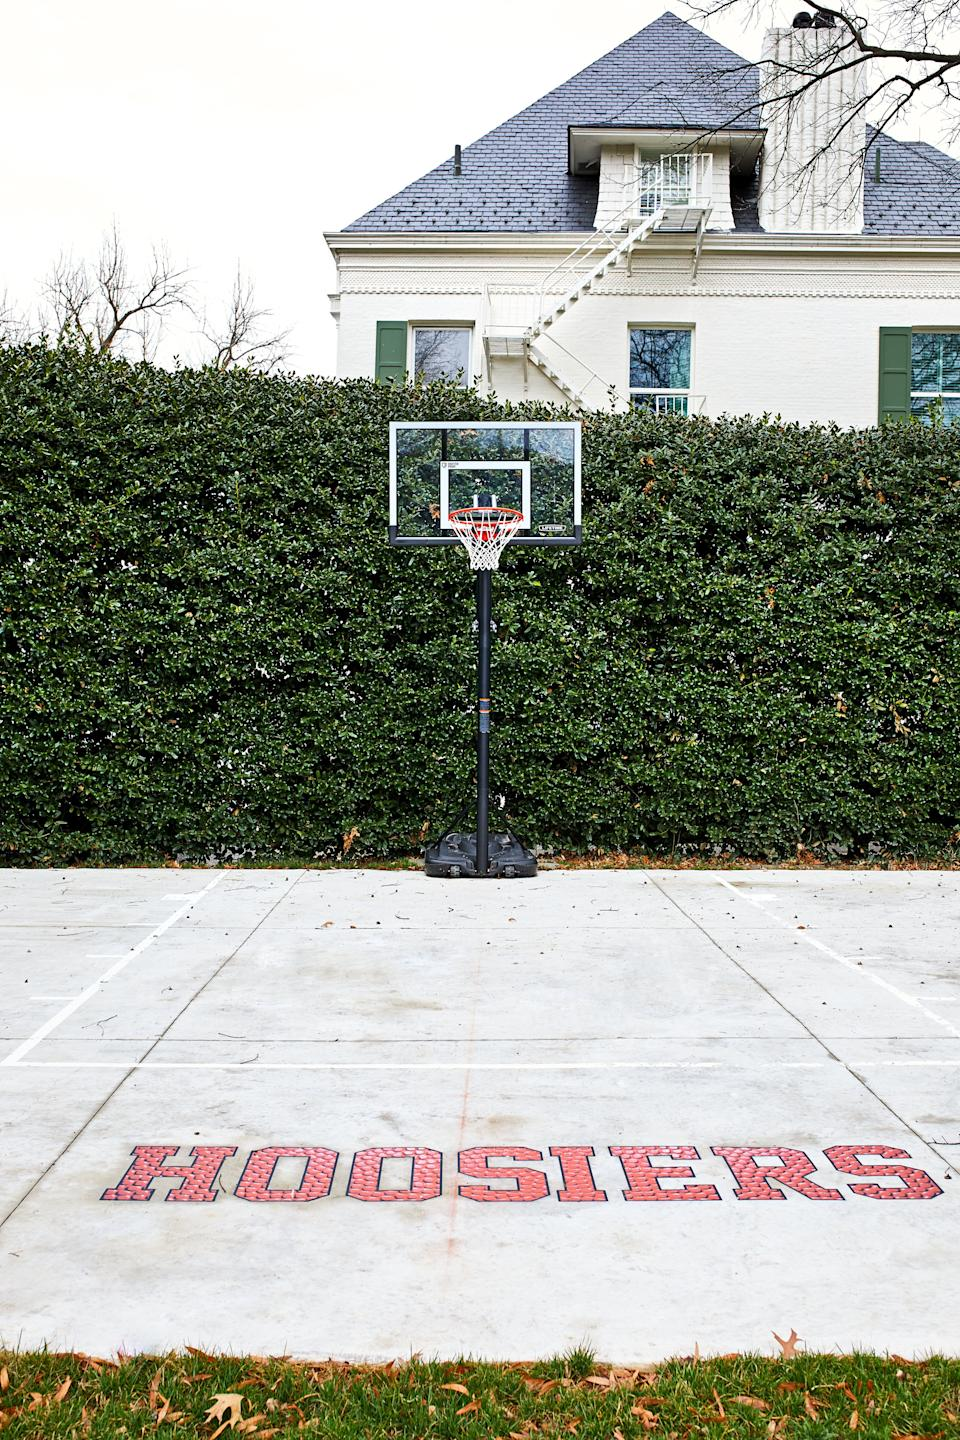 "The Pence family added the logo <a href=""https://www.washingtonpost.com/lifestyle/magazine/new-curtains-a-beehive-and-a-basketball-court-the-pences-at-the-vice-presidents-residence/2018/04/12/c3817dec-18cb-11e8-92c9-376b4fe57ff7_story.html"" target=""_blank"" rel=""noopener noreferrer"">from the movie ""Hoosiers""</a> for their time at the residence. (Photo: The Washington Post via Getty Images)"